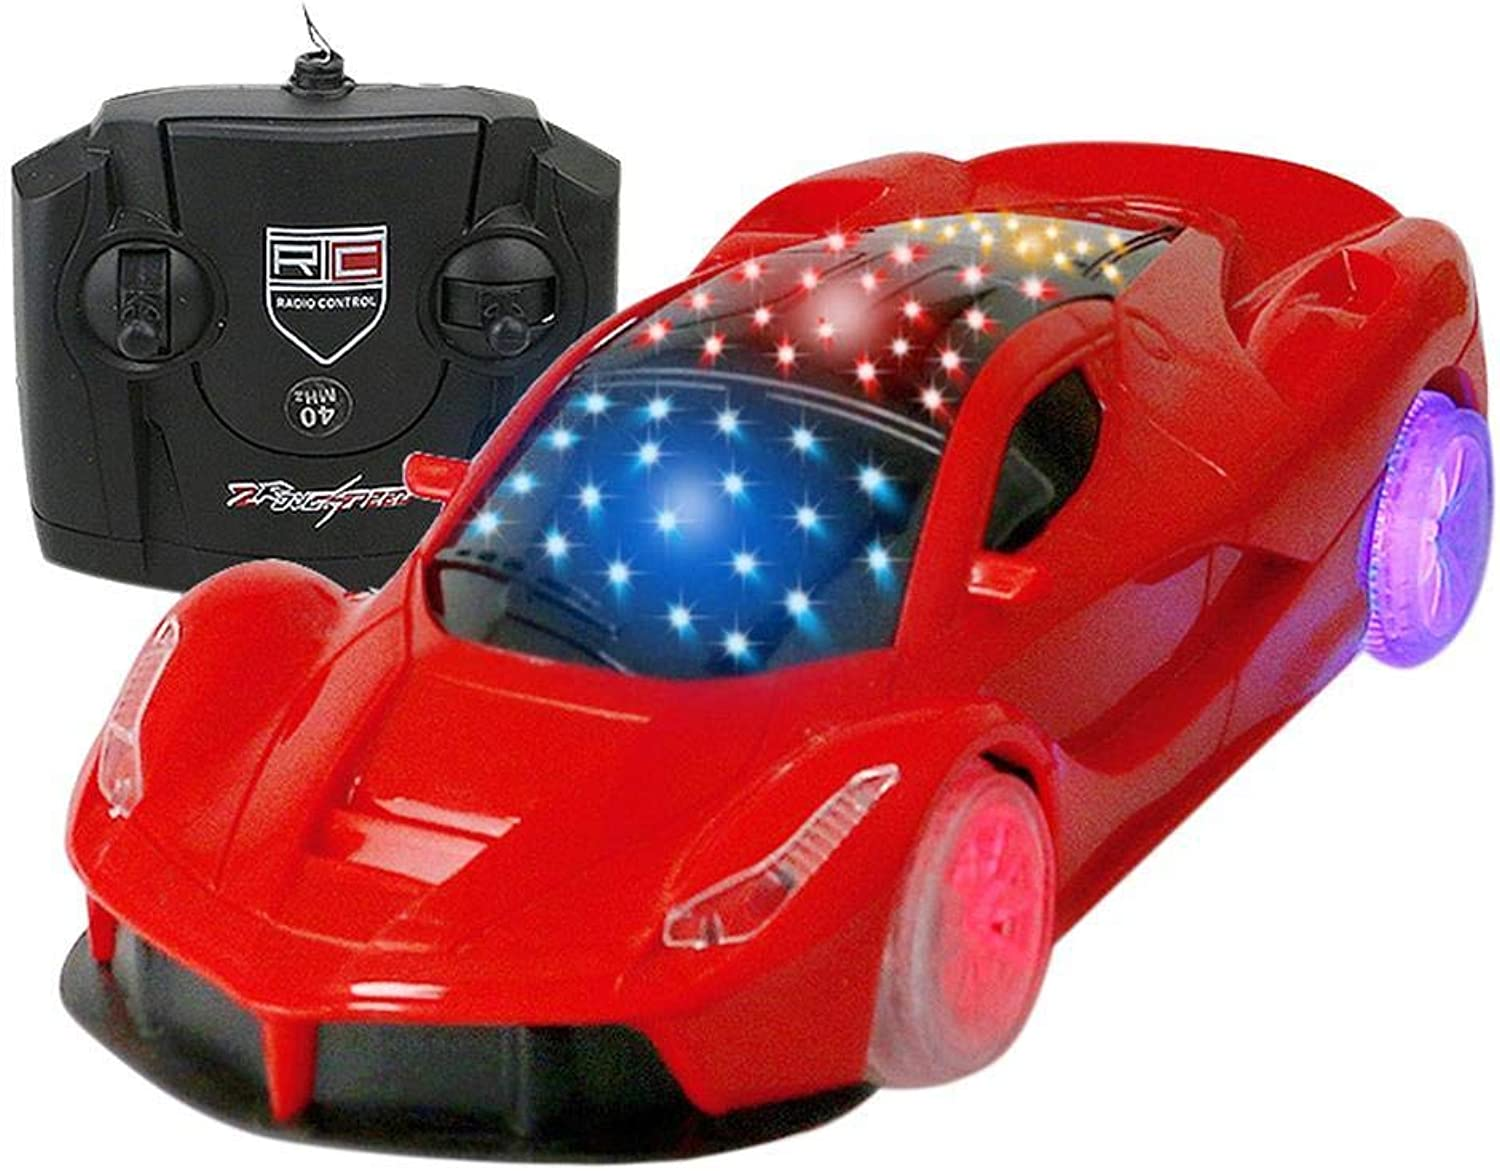 Generic Electric Remote Control Toy Car Model with USB Cable Flashing Casual Led Lights LED Kids 1050m Gifts 1 18 red Ferrari Shape